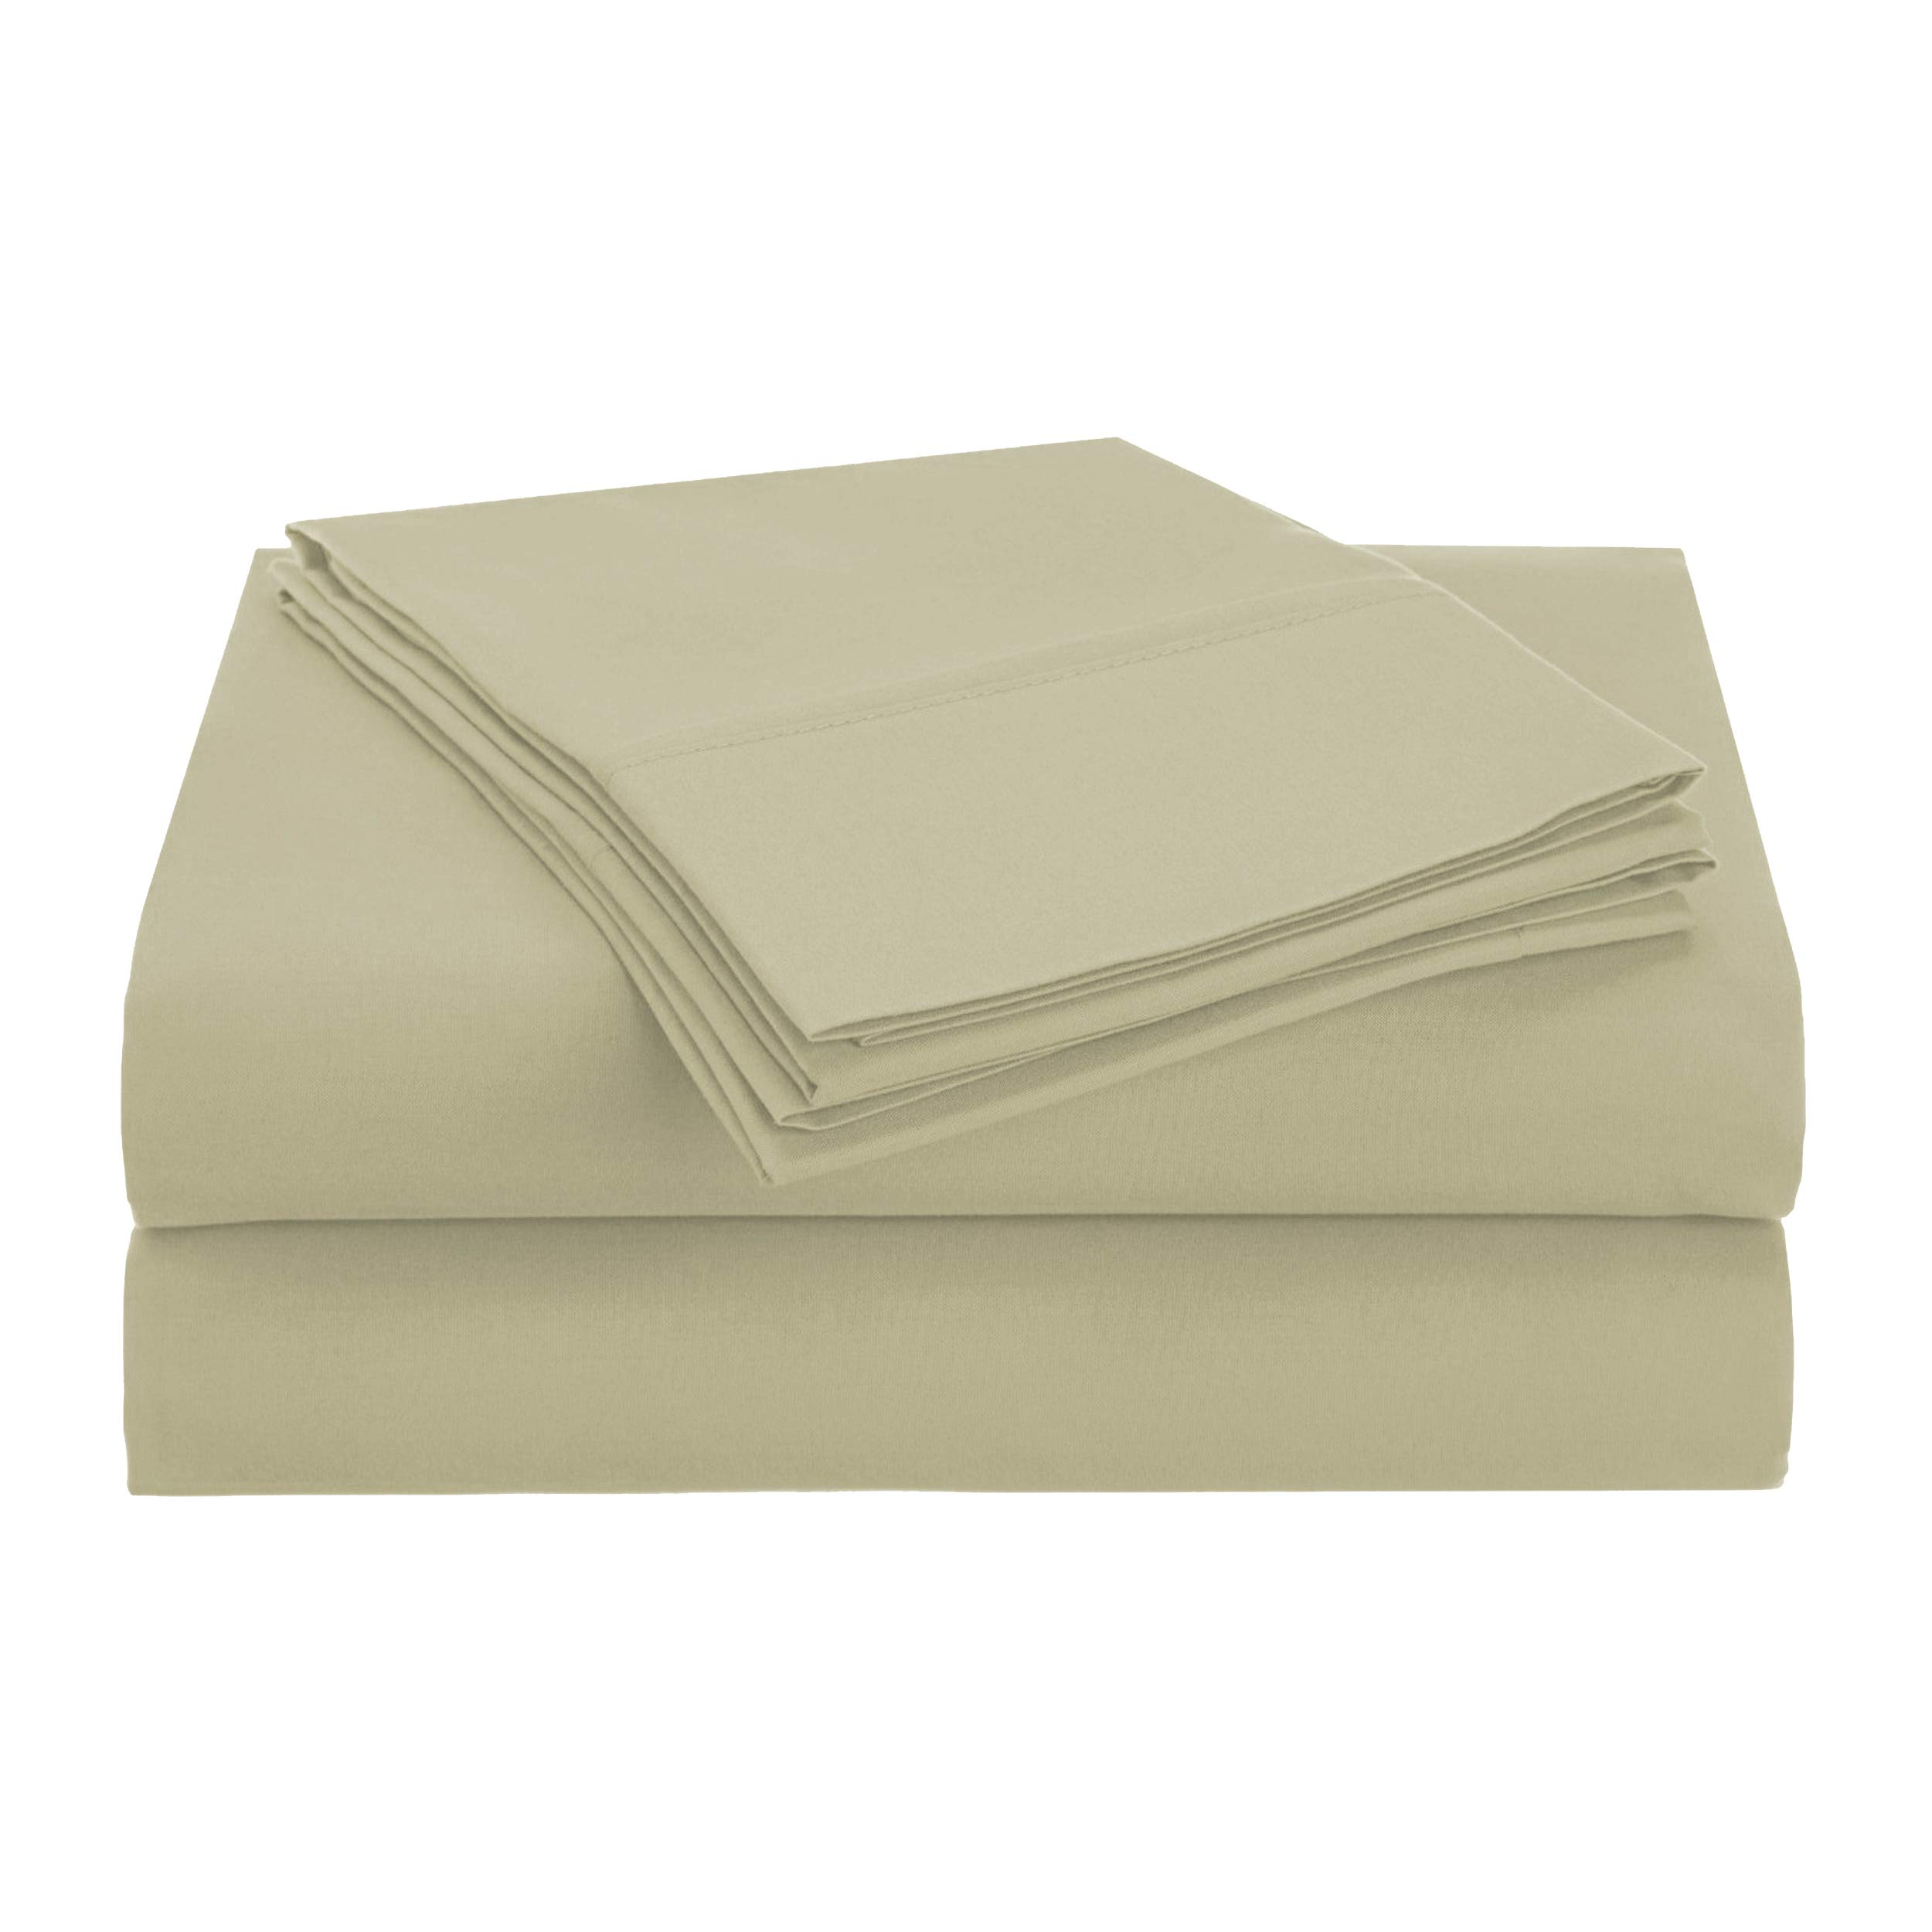 Superior 1500 Series Premium Quality 100% Brushed Soft Microfiber 3-Piece Luxury Deep Pocket Cooling Bed Sheet Set, Hypoallergenic, Wrinkle and Stain Resistant - Twin XL, Sage